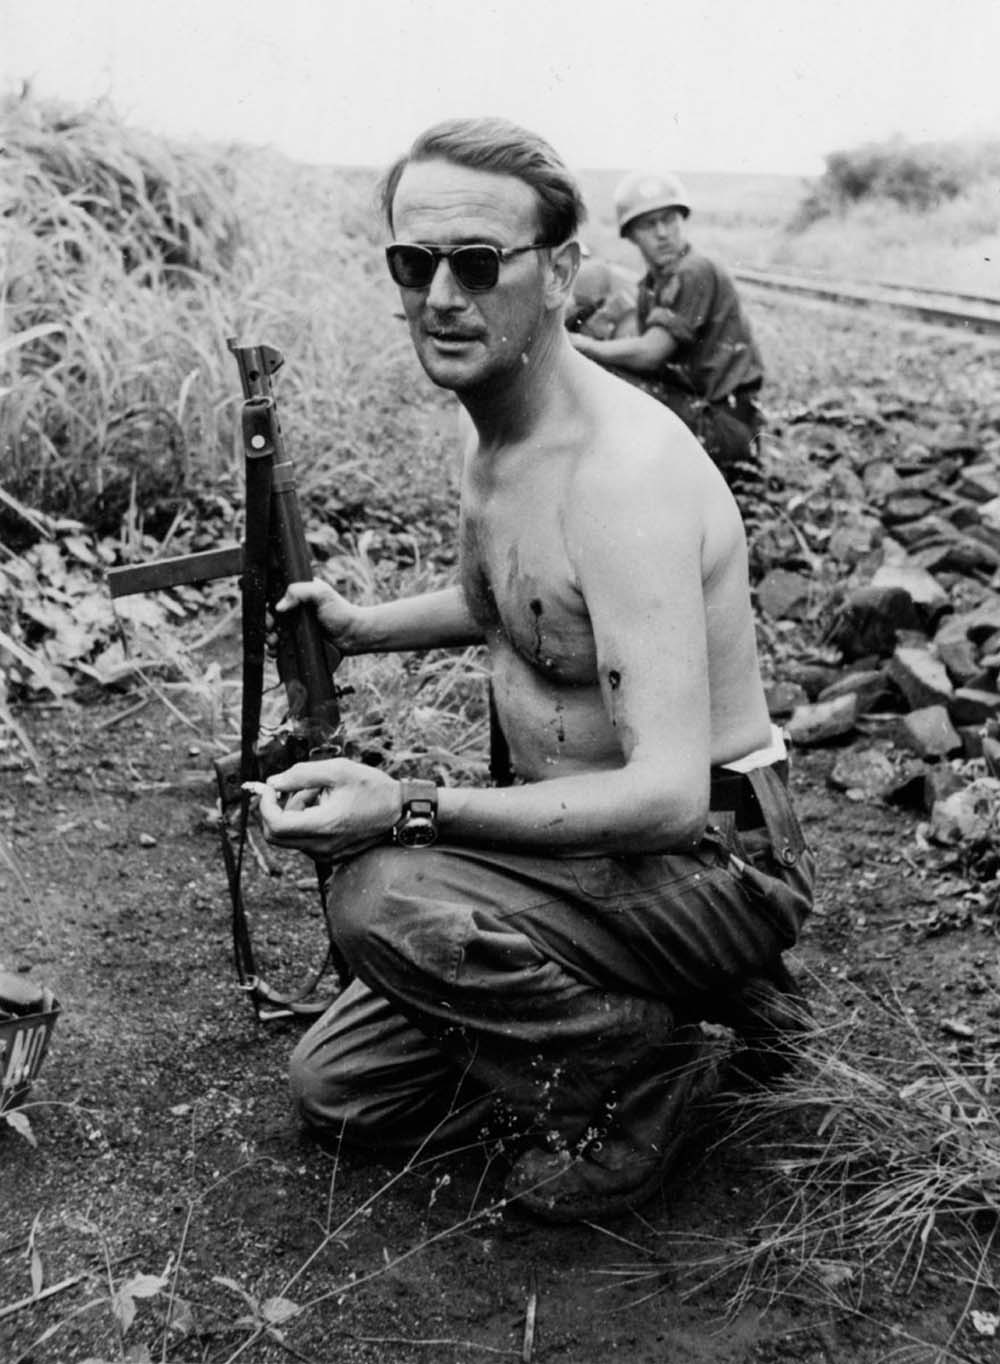 Swedish Major Erik Bonde smokes a cigarette after being ambushed and shot twice. Congo, Jan 15th 1961.